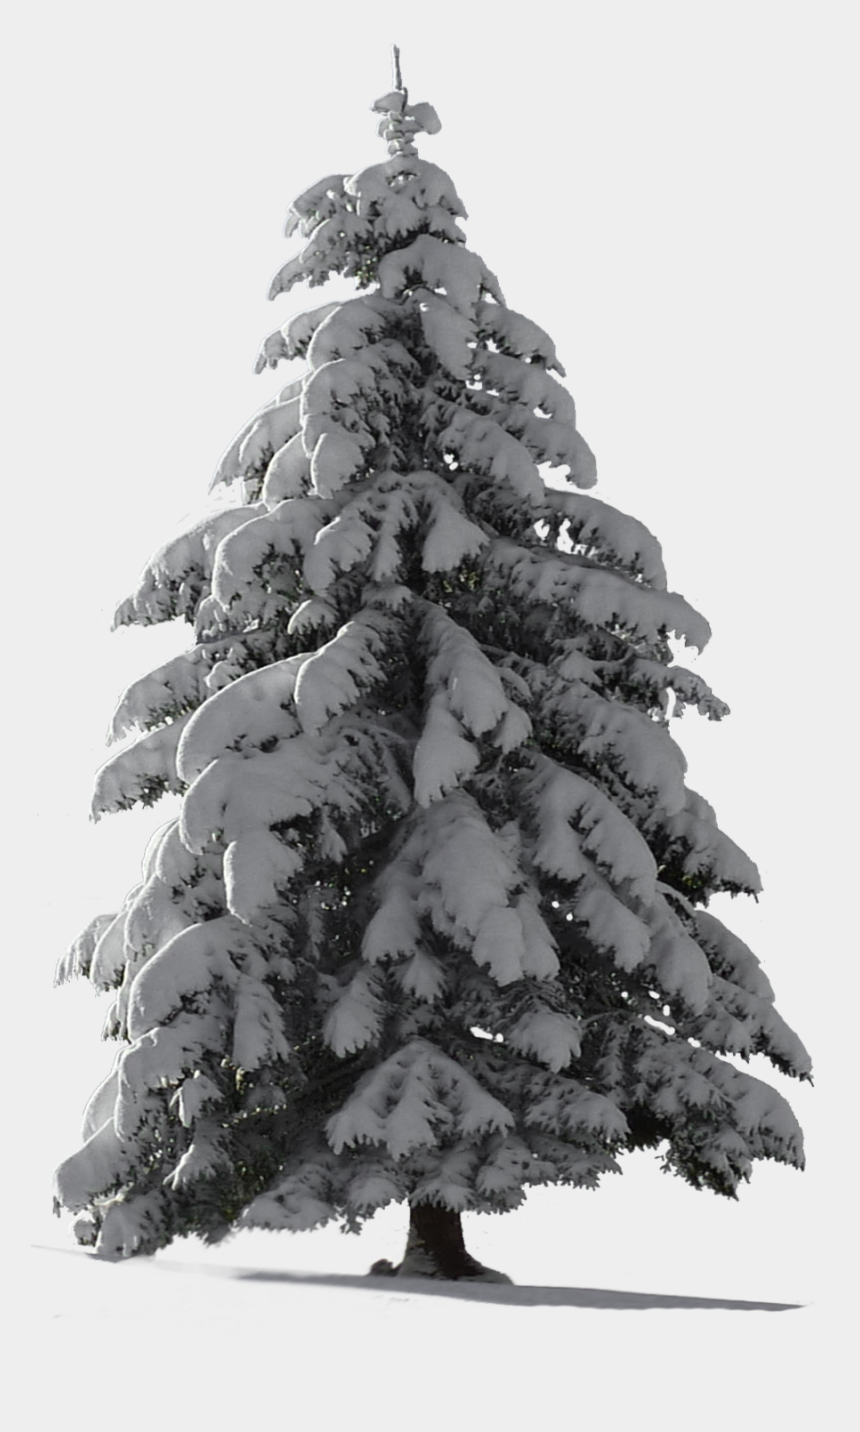 winter tree clipart black and white, Cartoons - Snow Pine Png - Christmas Tree Snow Png